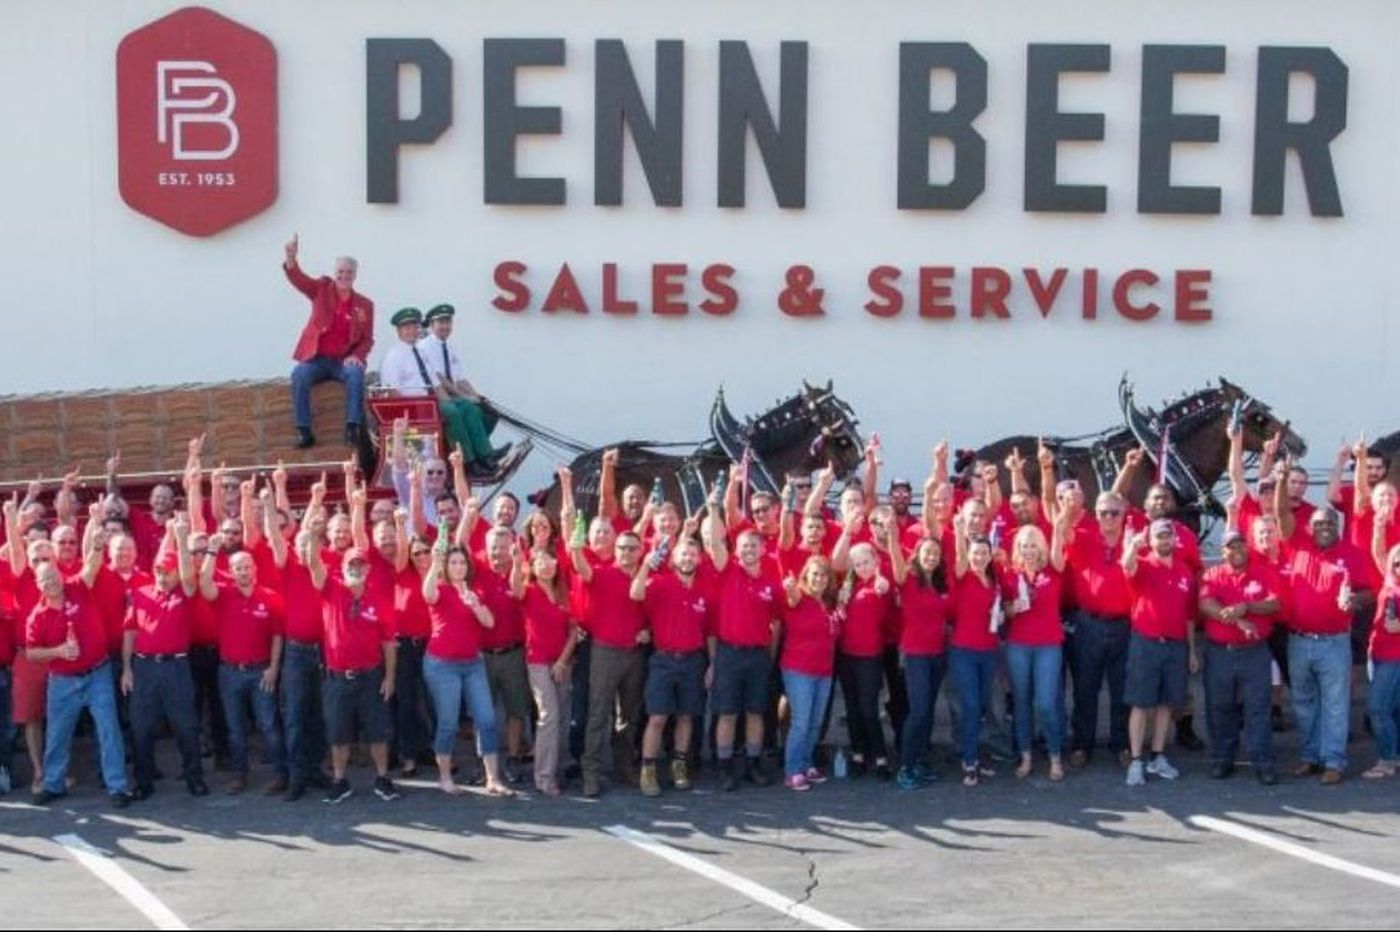 Update: As Manayunk goes residential, Penn Beer moving out to Gretz site in Hatfield Township